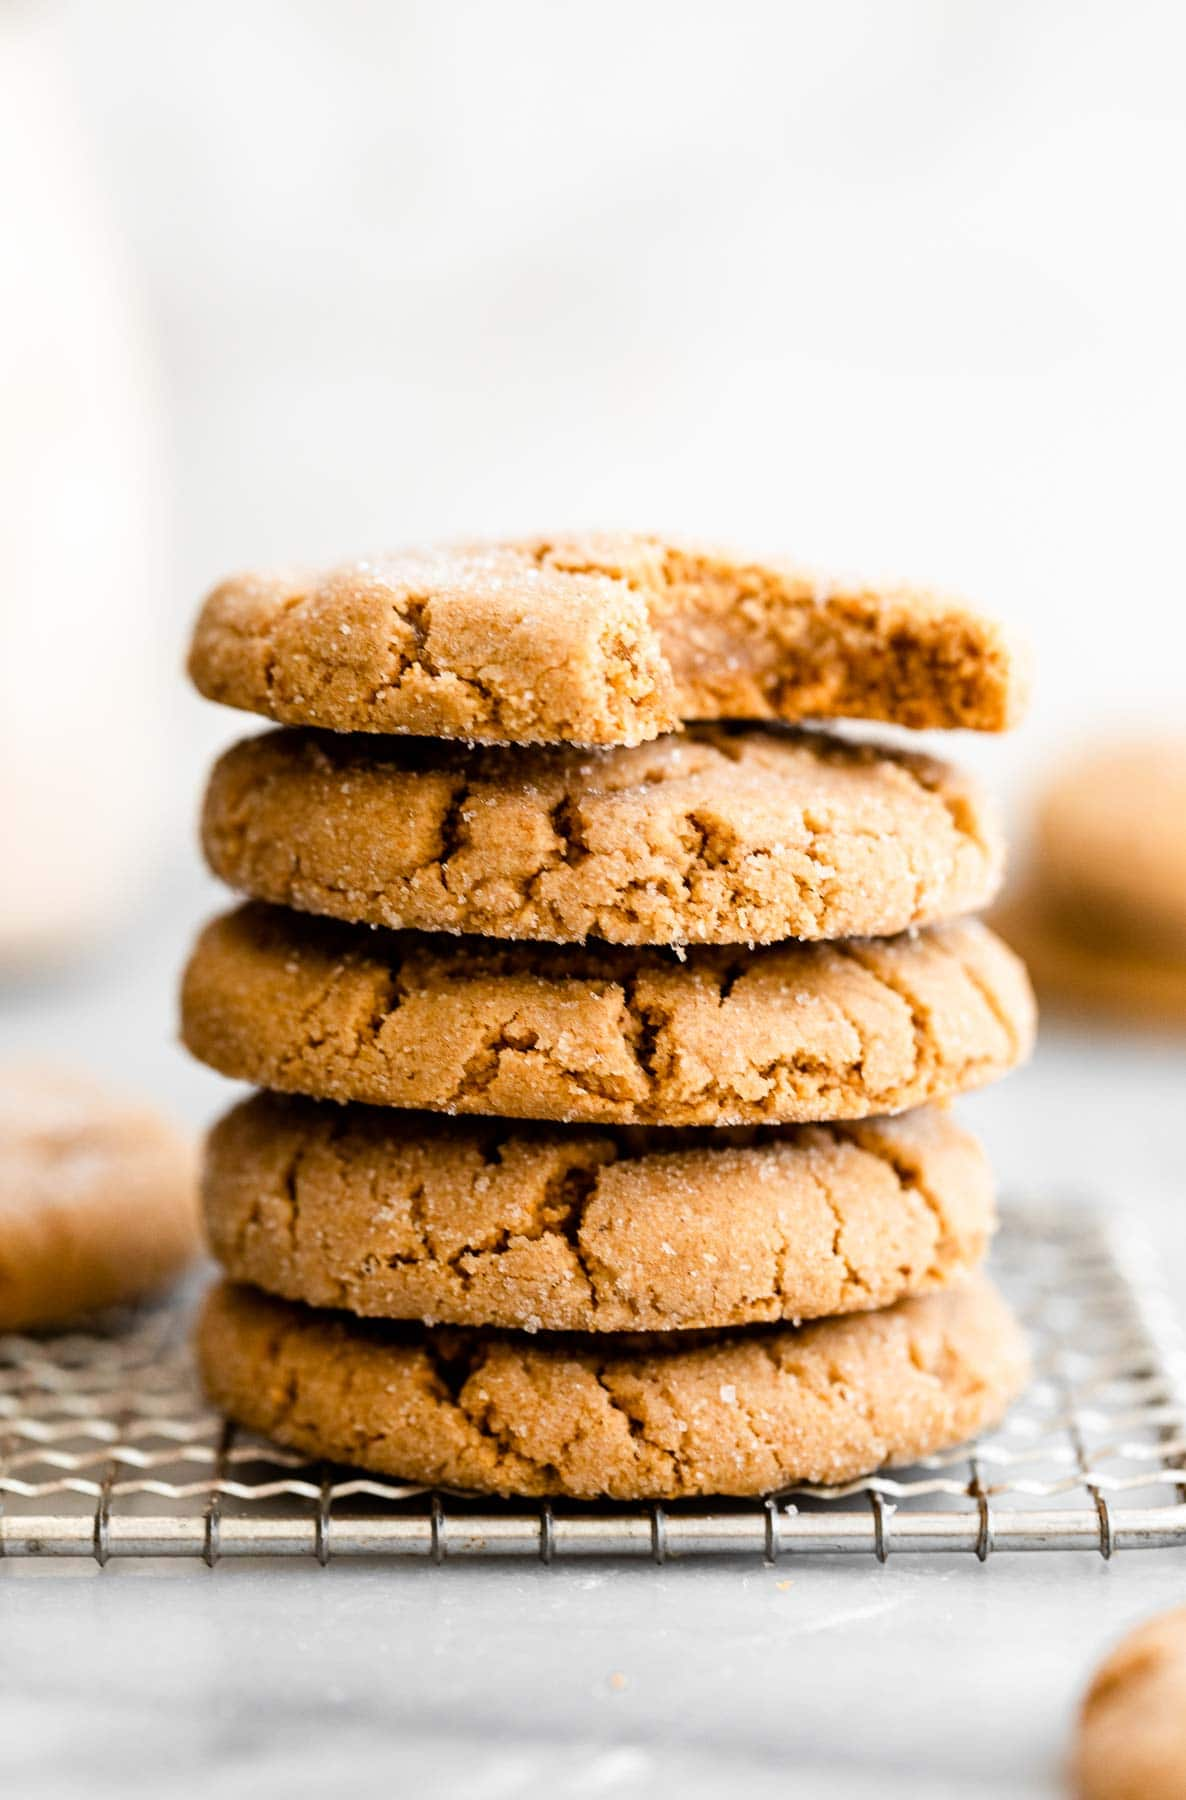 Vegan peanut butter cookies stacked one each other on a cooling rack.